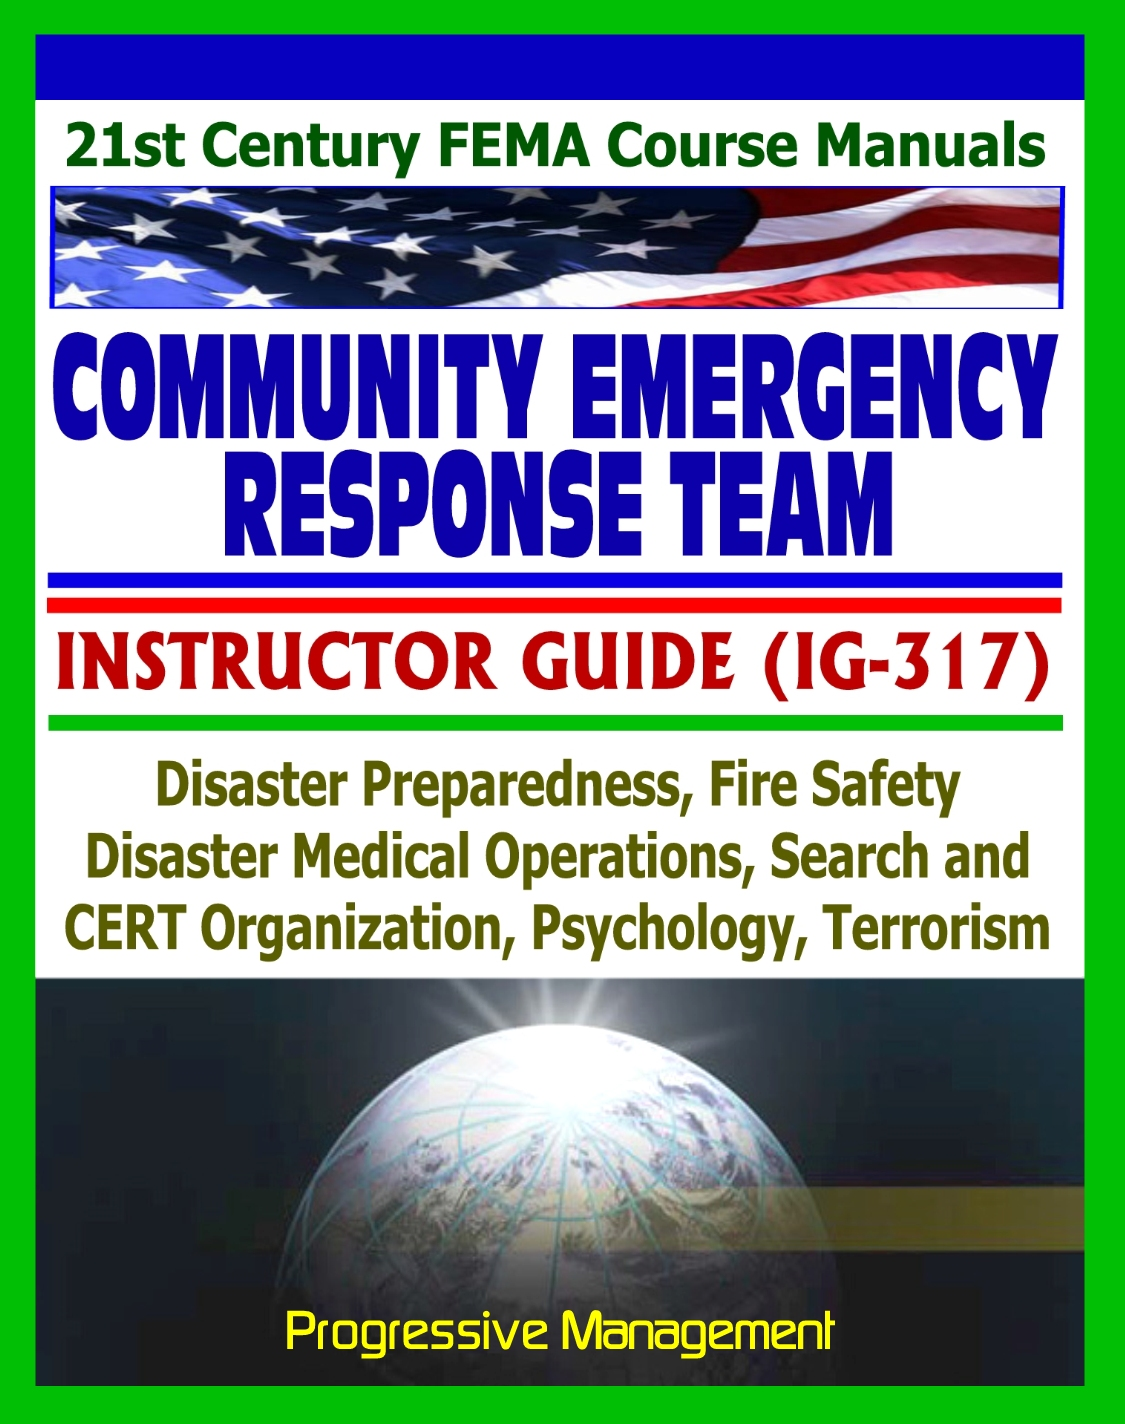 the issues and problems of the federal emergency management agency or fema during a disaster respons Fema and dhs: the need for an integrated system federal preparedness agency, federal disaster assistance problems for disaster management.